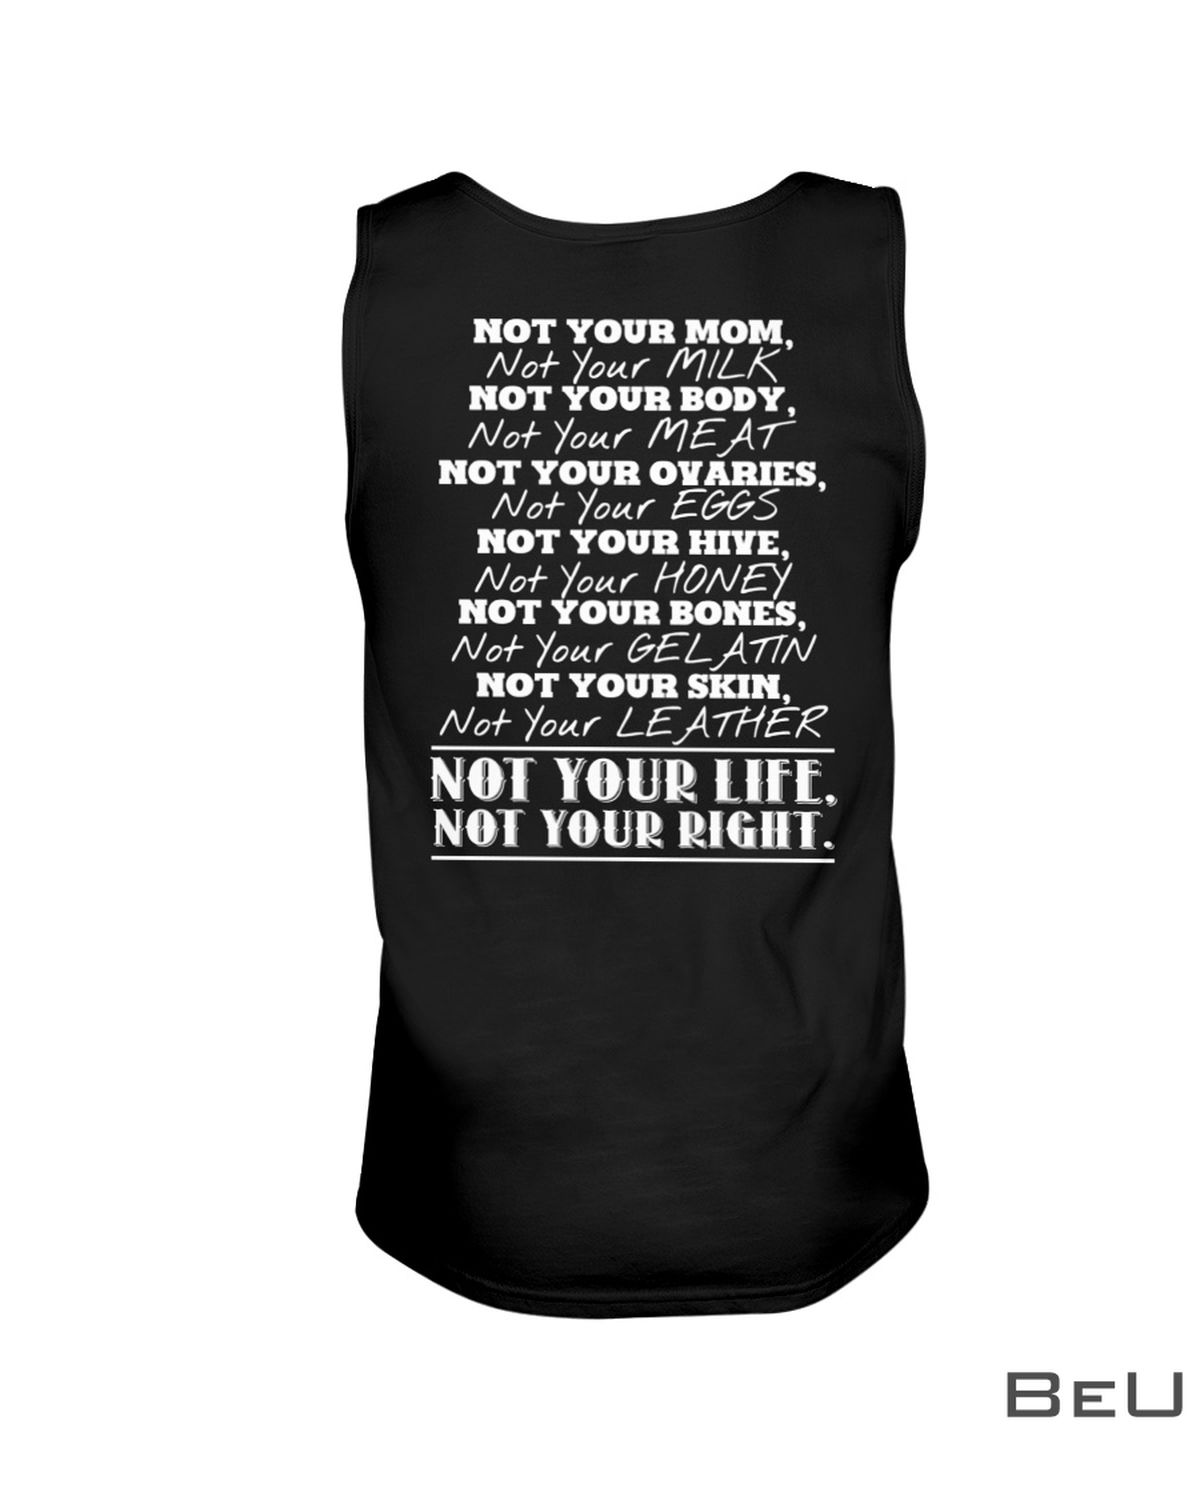 Not Your Life Not Your Right Shirtc